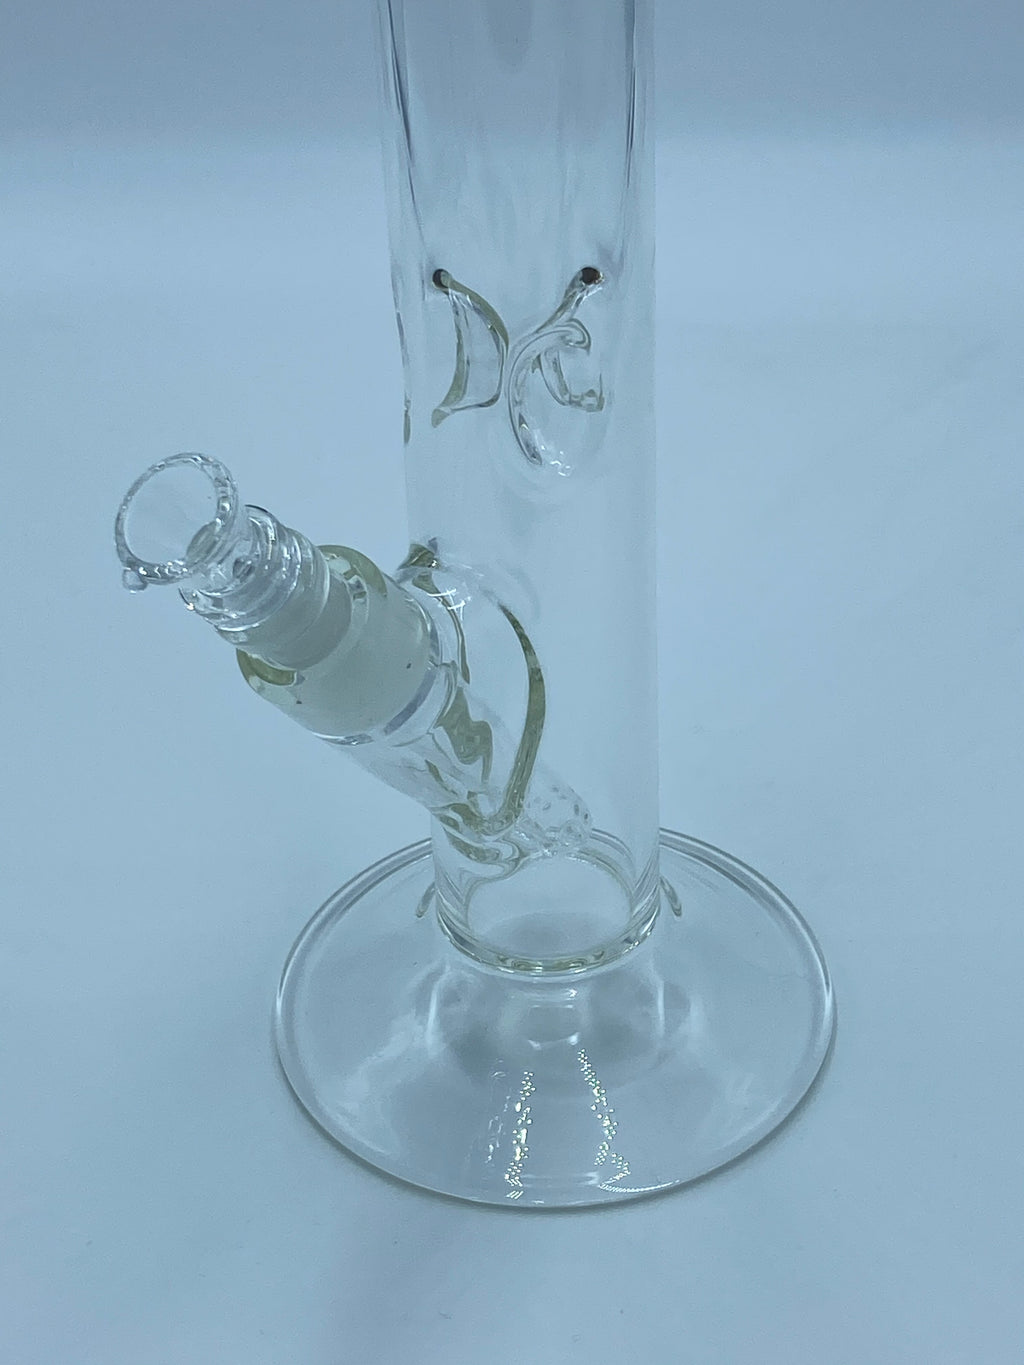 SHELDON BLACK 22 INCH STRAIGHT TUBE - Smoke Country - Land of the artistic glass blown bongs